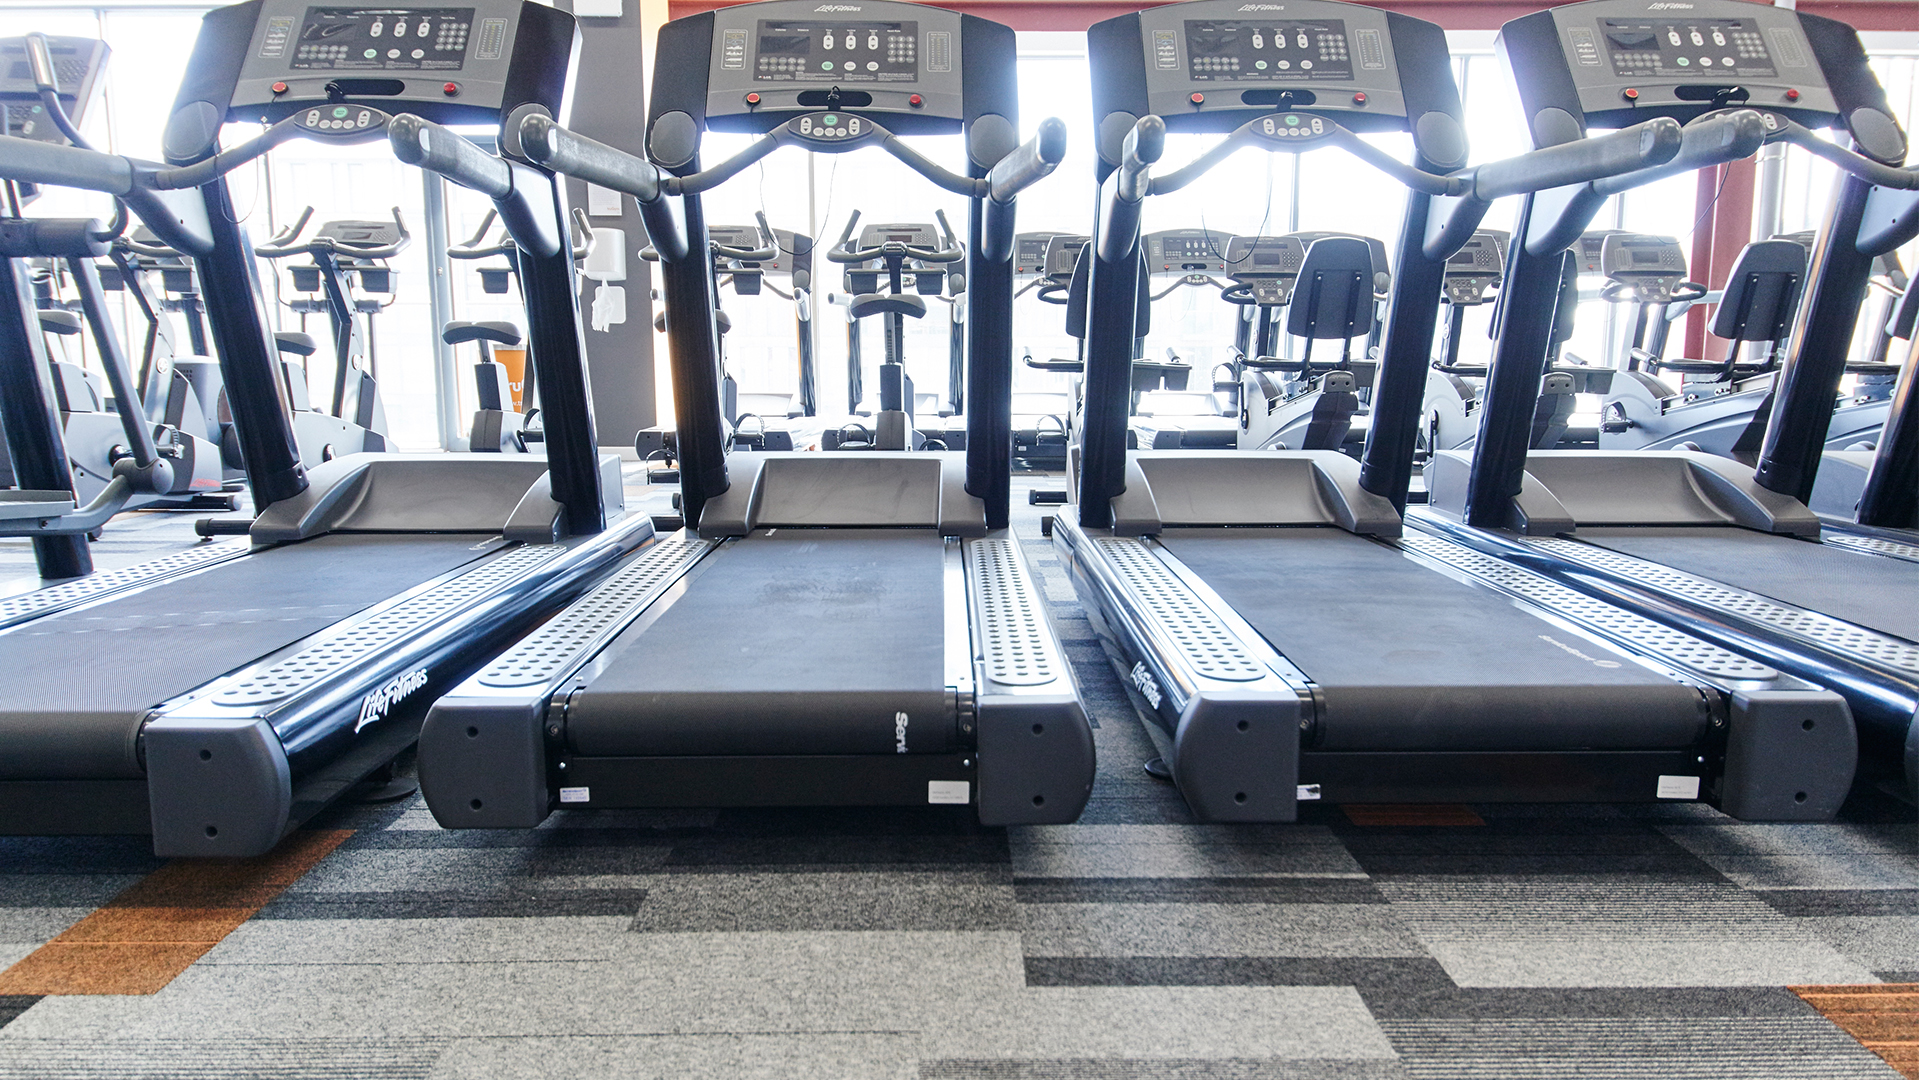 Best Fitness Gyms In Keighley Cheap Low Cost Gyms Keighley